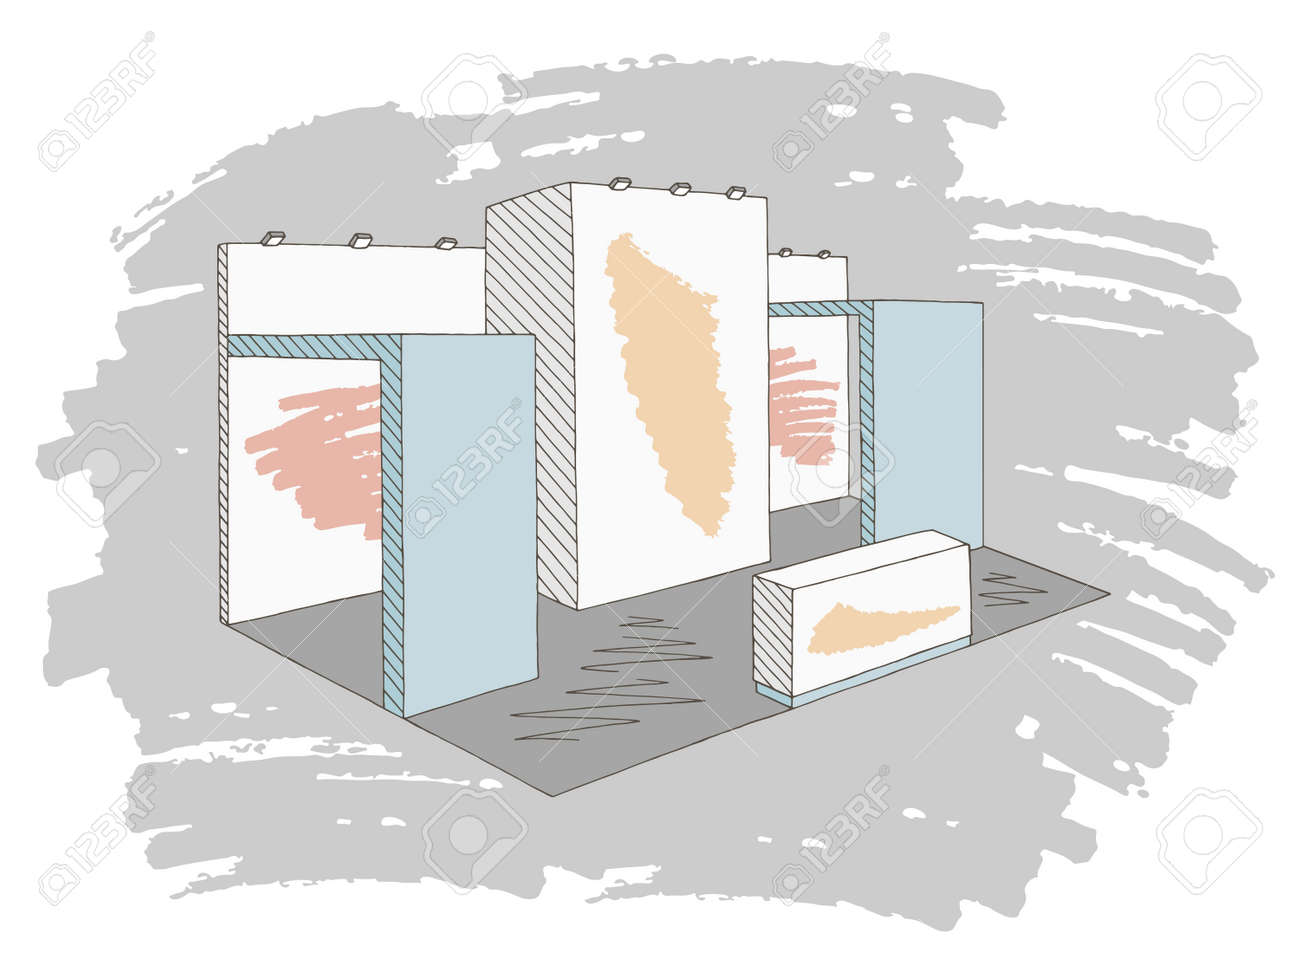 Exhibition Stand Sketch : Pin by janew law on 展臺 exhibition stand design booth design